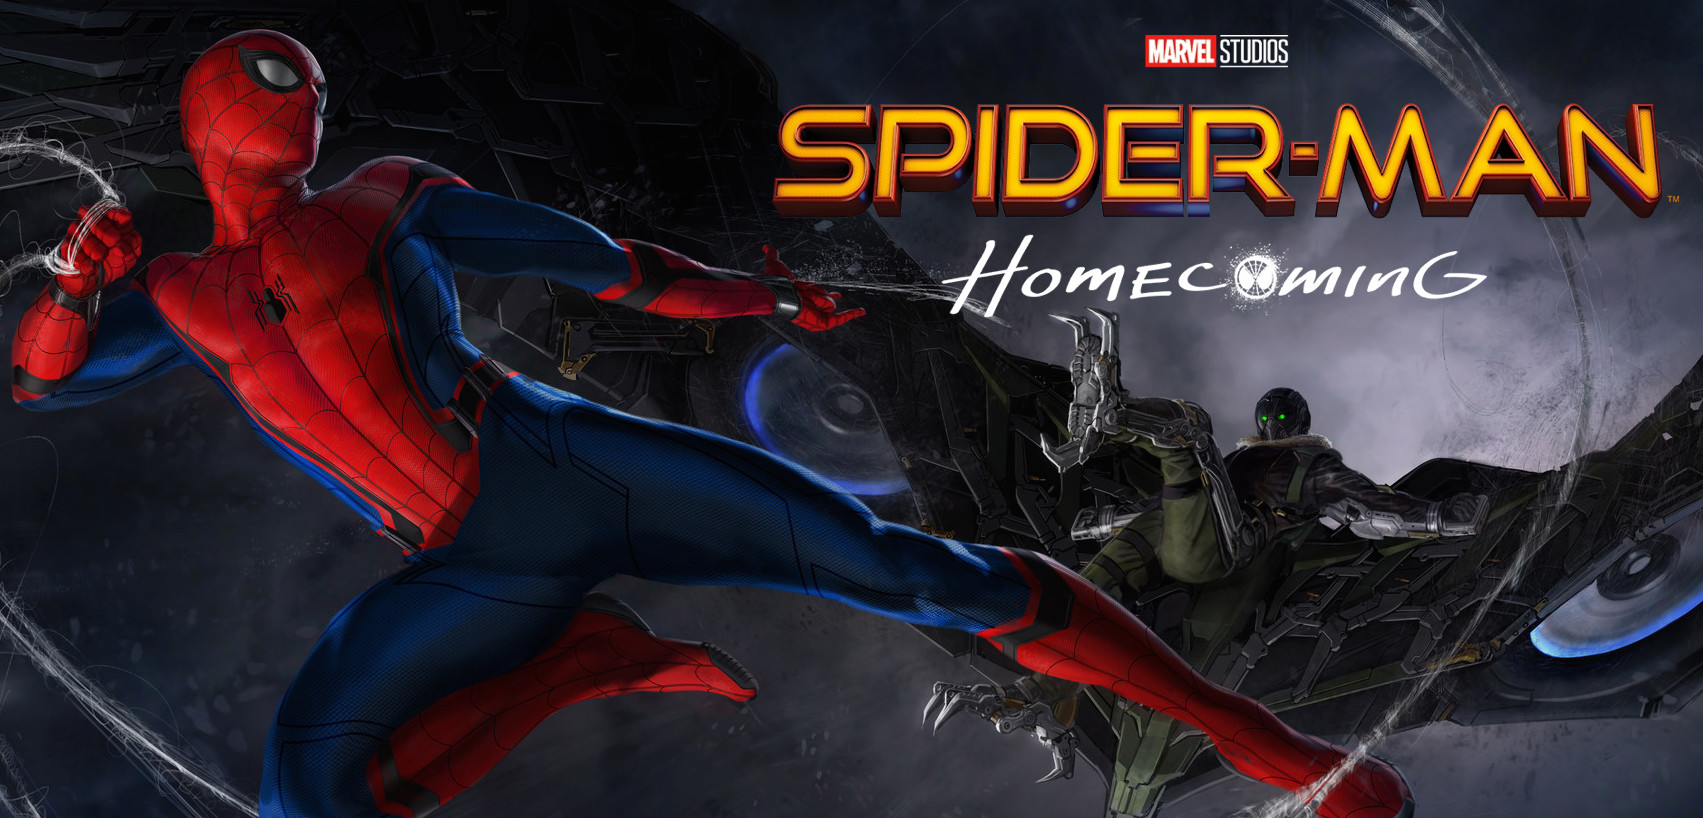 """HOT TOYS Reveals Their SPIDER-MAN: HOMECOMING """"Homemade Suit Version"""" Collectible Figure"""